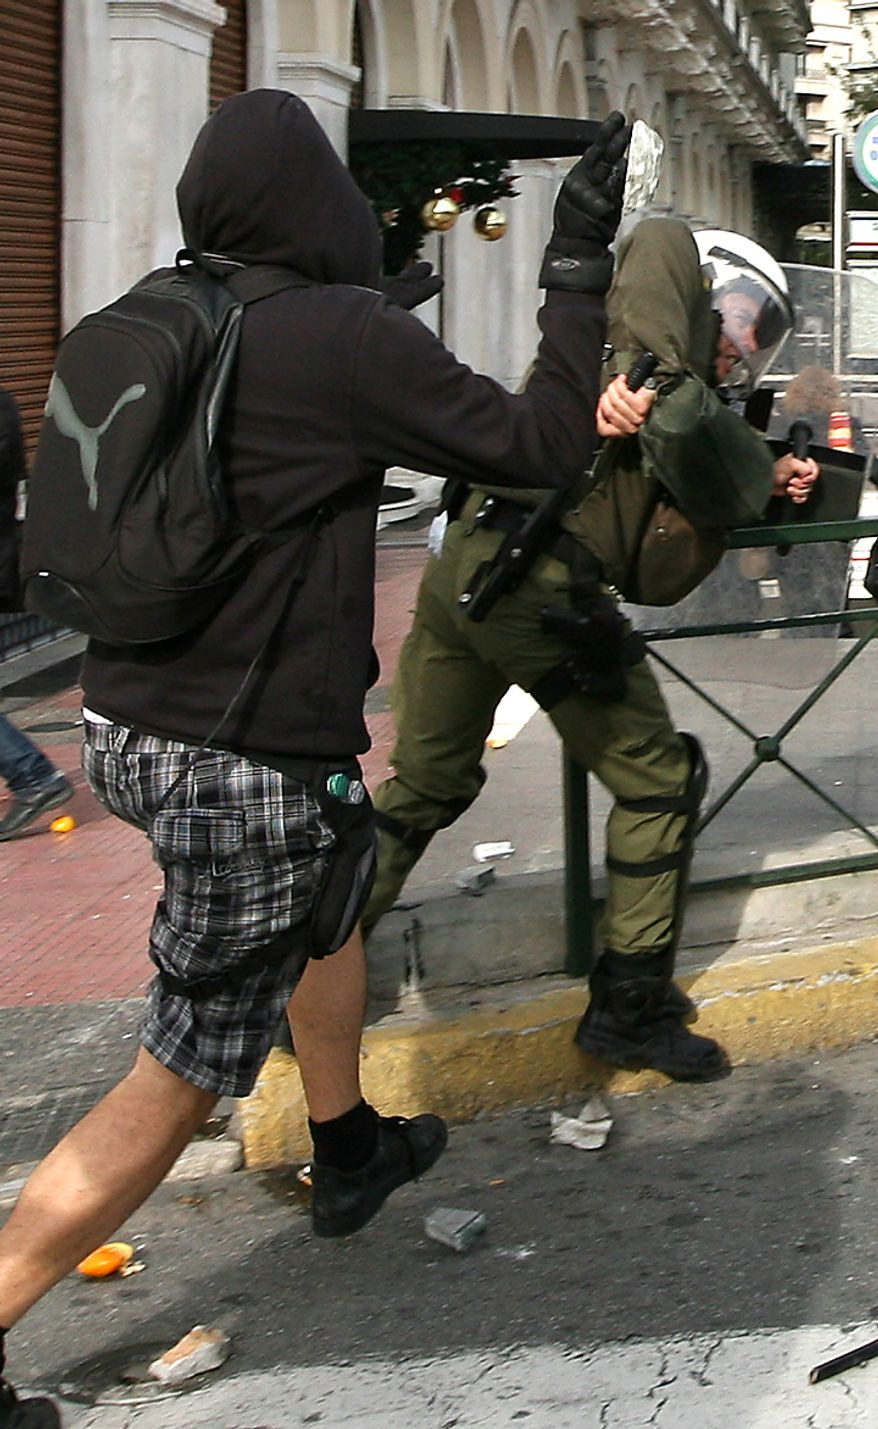 Protester attacks a riot police officer during a rally in Athens on Monday, Dec. 6, 2010. Youths hurled rocks and oranges at a government building in central Athens during a student protest to mark two years since the fatal police shooting of a teenage boy that sparked Greece's worst riots in decades. Police closed roads and deployed several thousand officers around the city but maintained a minimal presence at the site where some 1,500 students gathered outside Athens University's main buildings. (AP Photo/Alkis Konstantinidis)